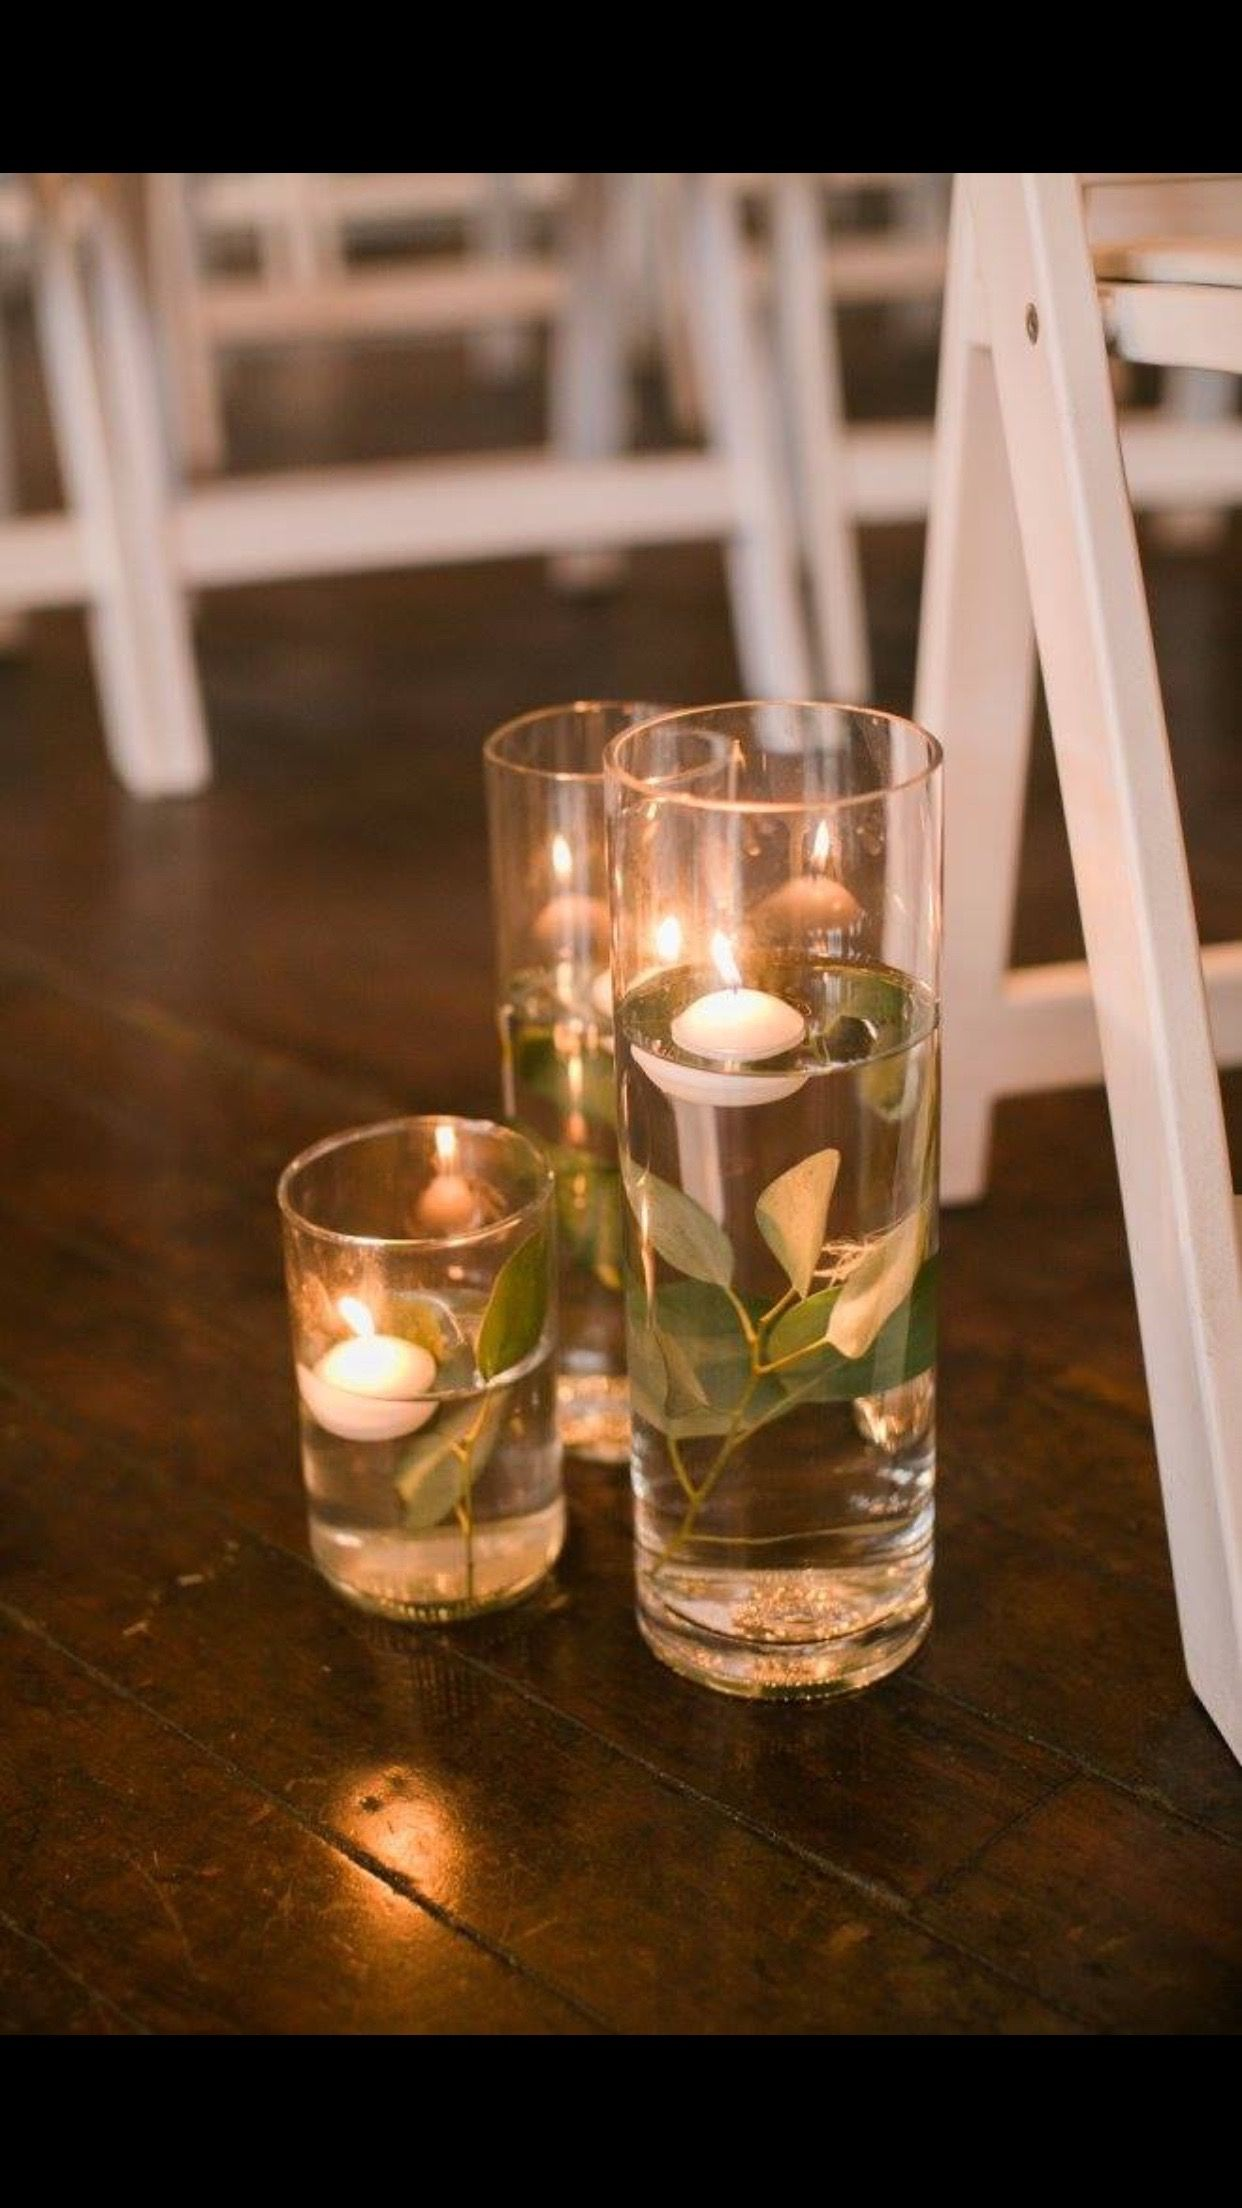 Submerged Eucalyptus Floating Candles Down The Aisle The Flour